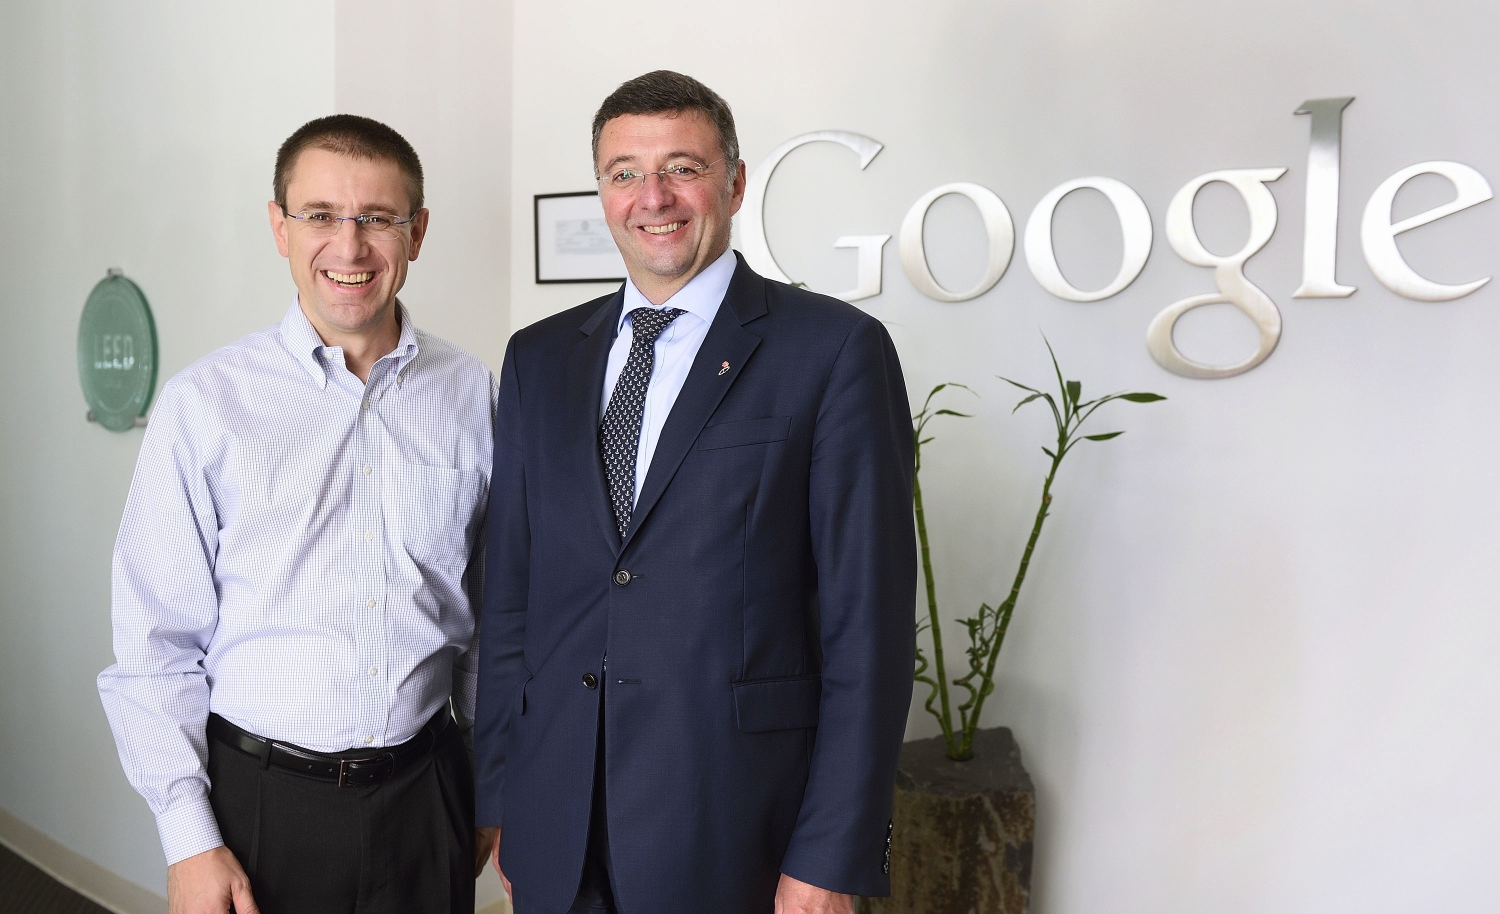 Minister Leichtfried and Vice President of Security & Privacy Engineering at Google, Gerhard Eschelbeck. Photo: BMVIT / Johannes Zinner